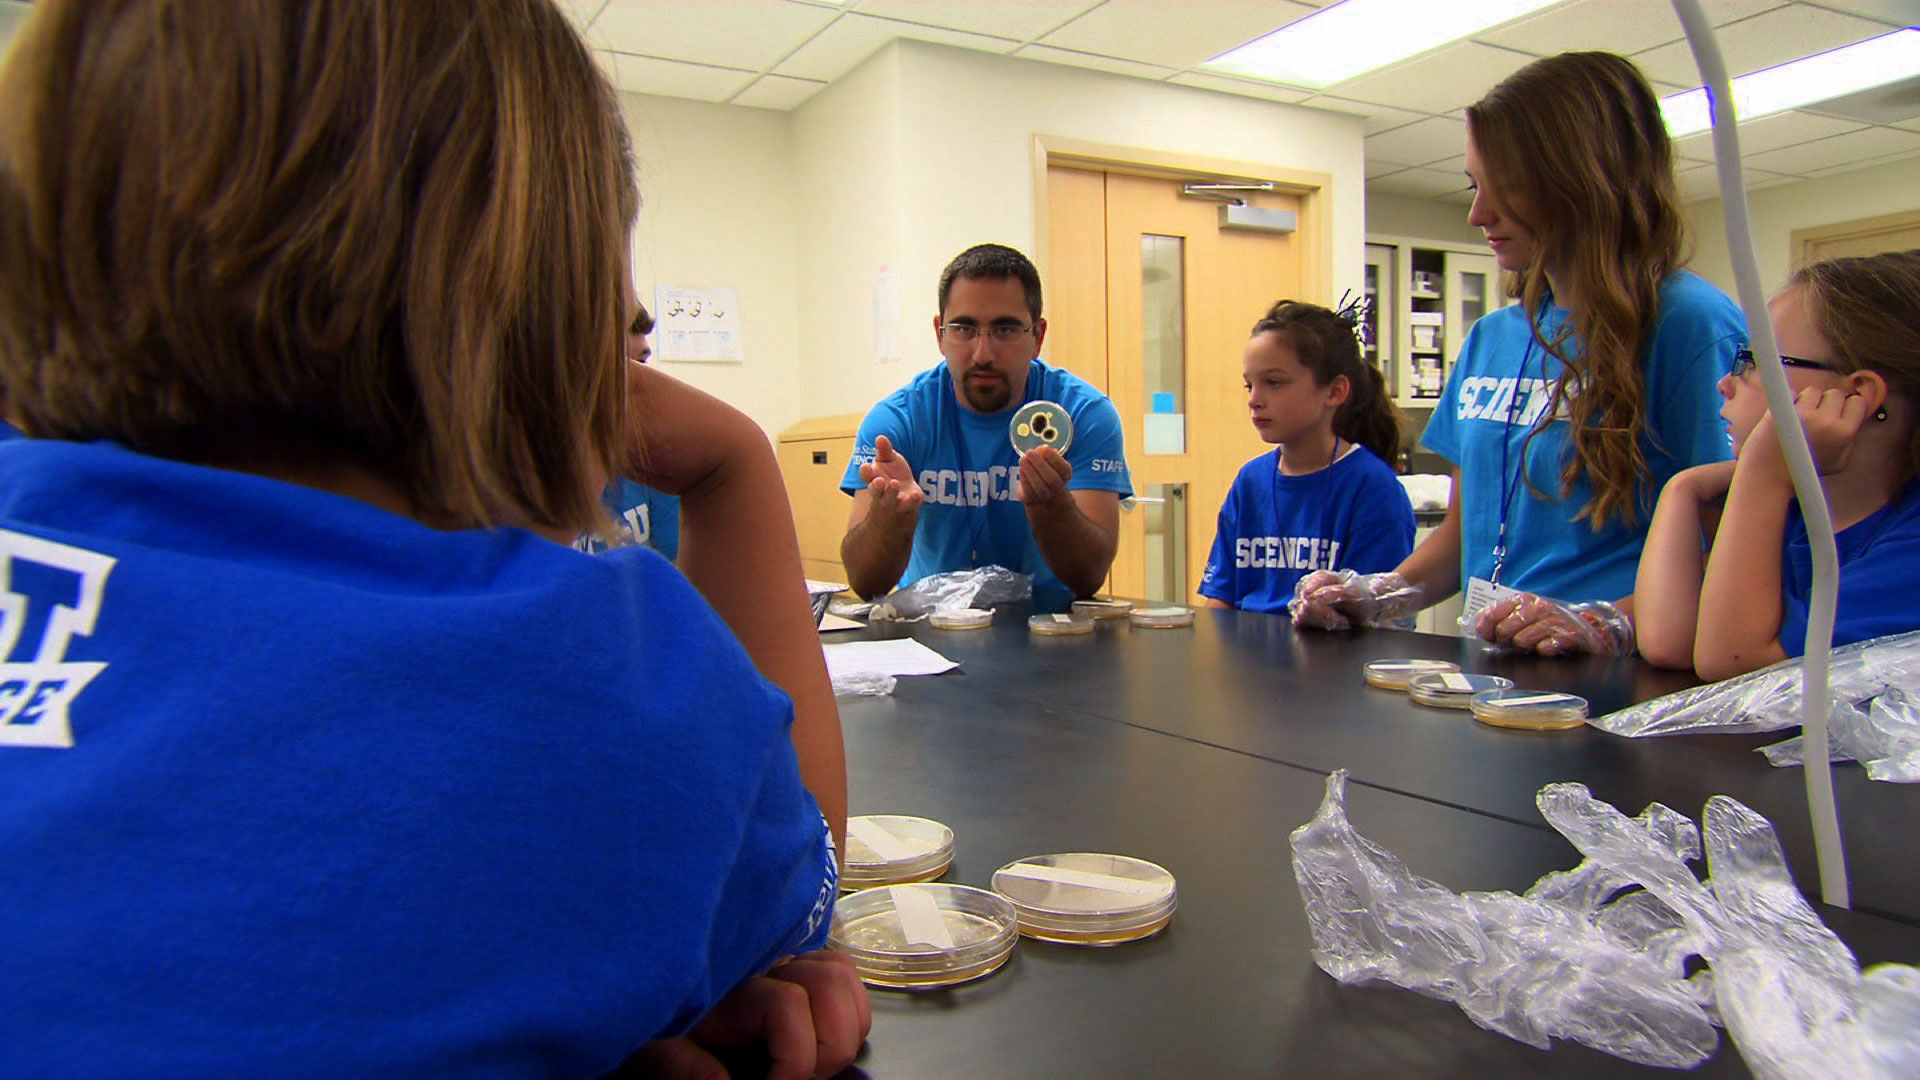 Instructor shows students petri dish